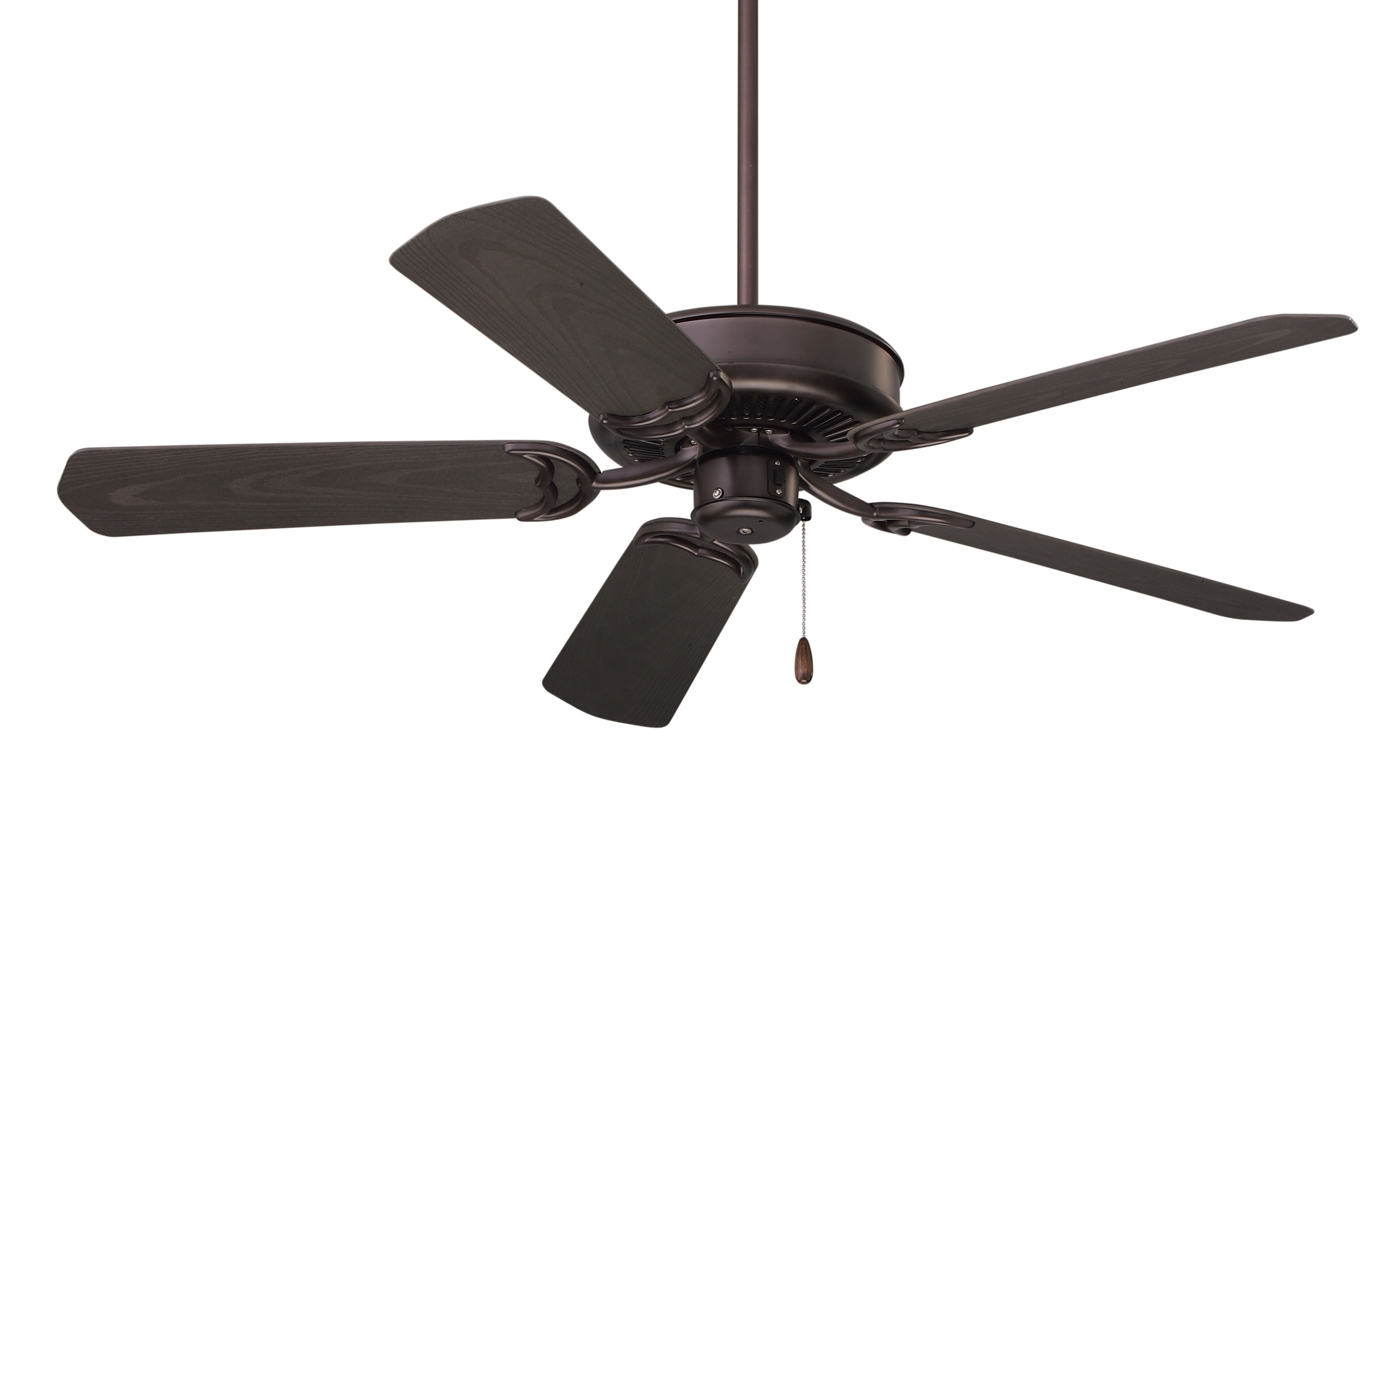 Best And Newest Ceiling Fan: Cool Emerson Ceiling Fans Design Emerson Ceiling Fans For Outdoor Electric Ceiling Fans (Gallery 9 of 20)